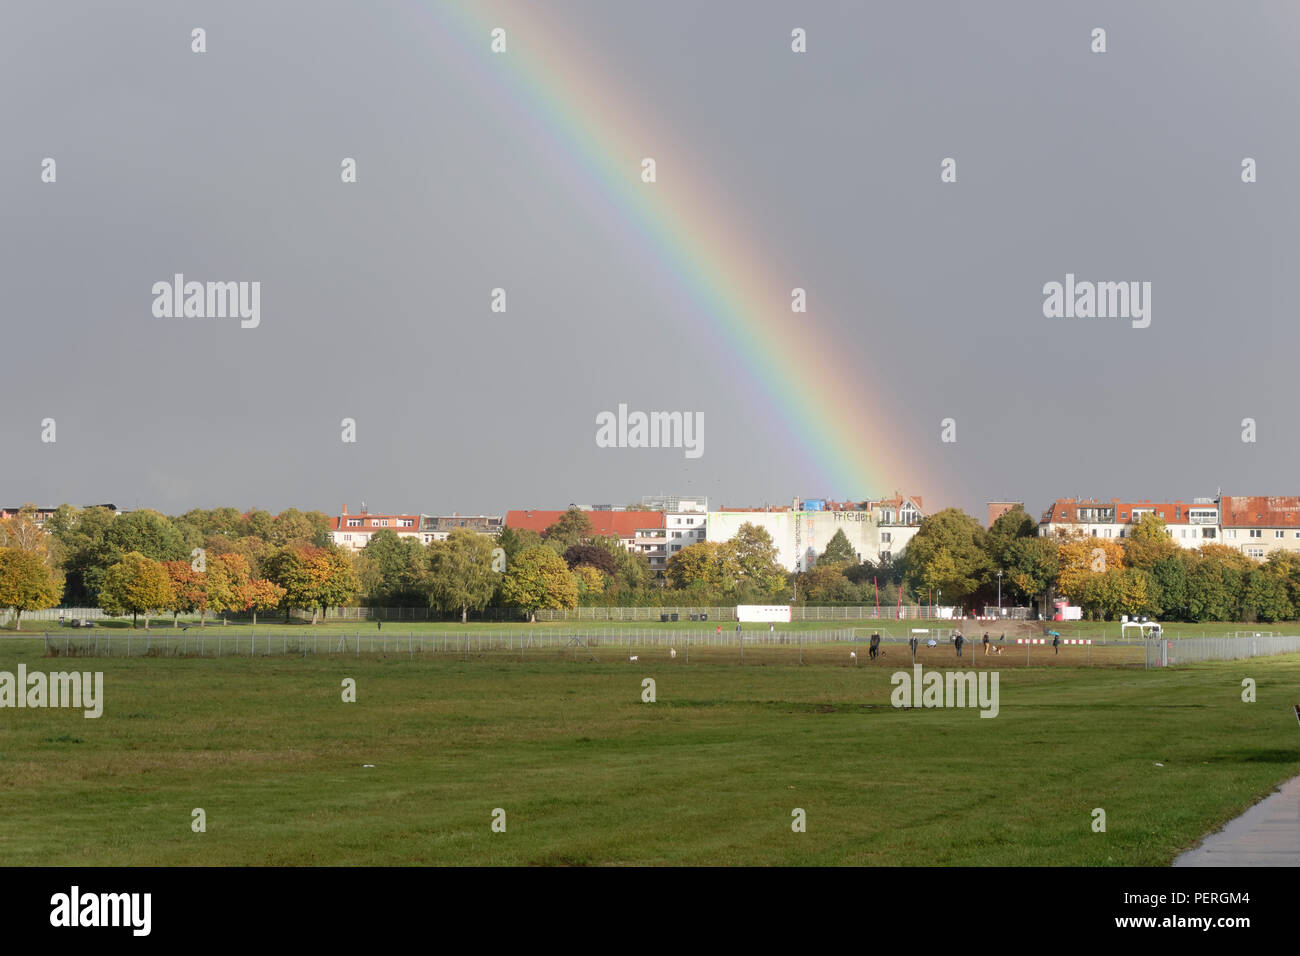 Rainbow over the Tempelhofer field, Berlin. - Stock Image